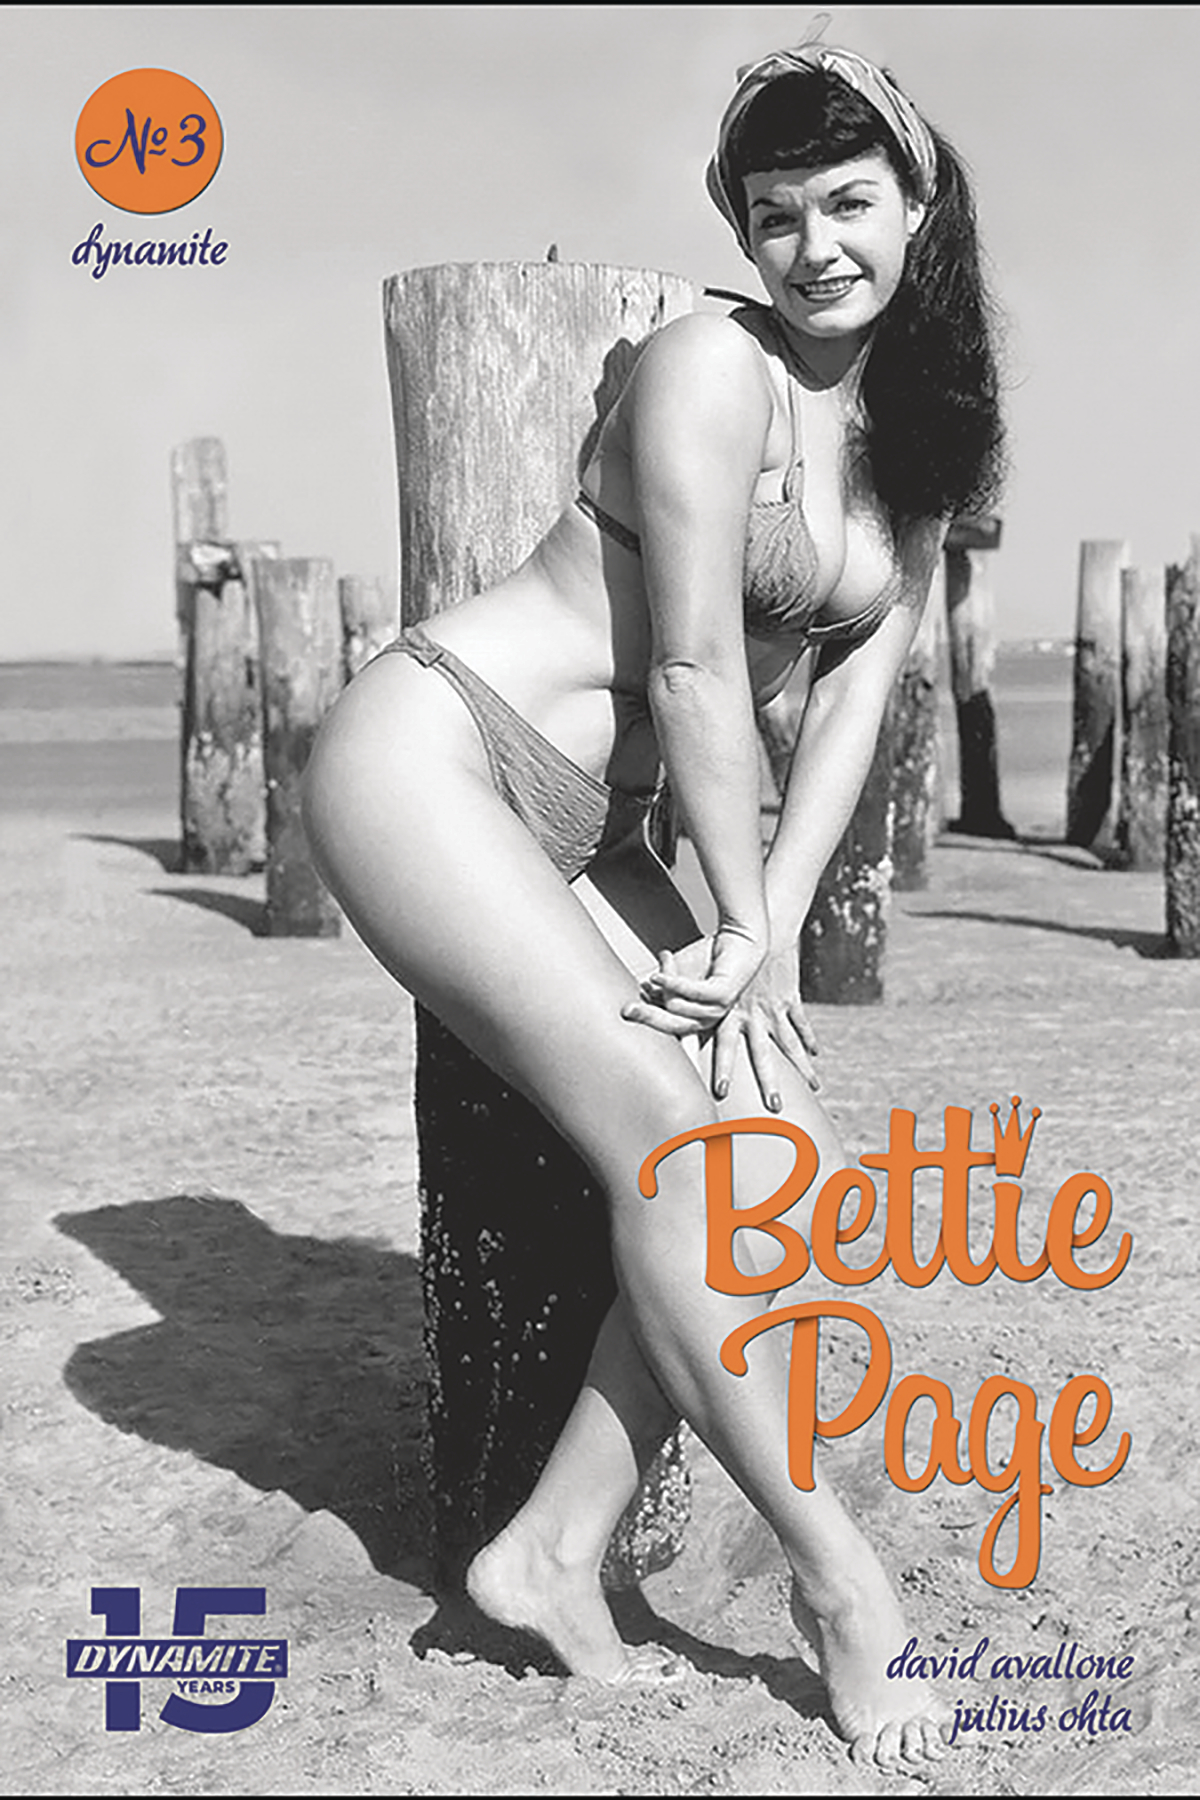 Bettie Page Hd apr191038 - bettie page unbound #3 cvr e photo - previews world